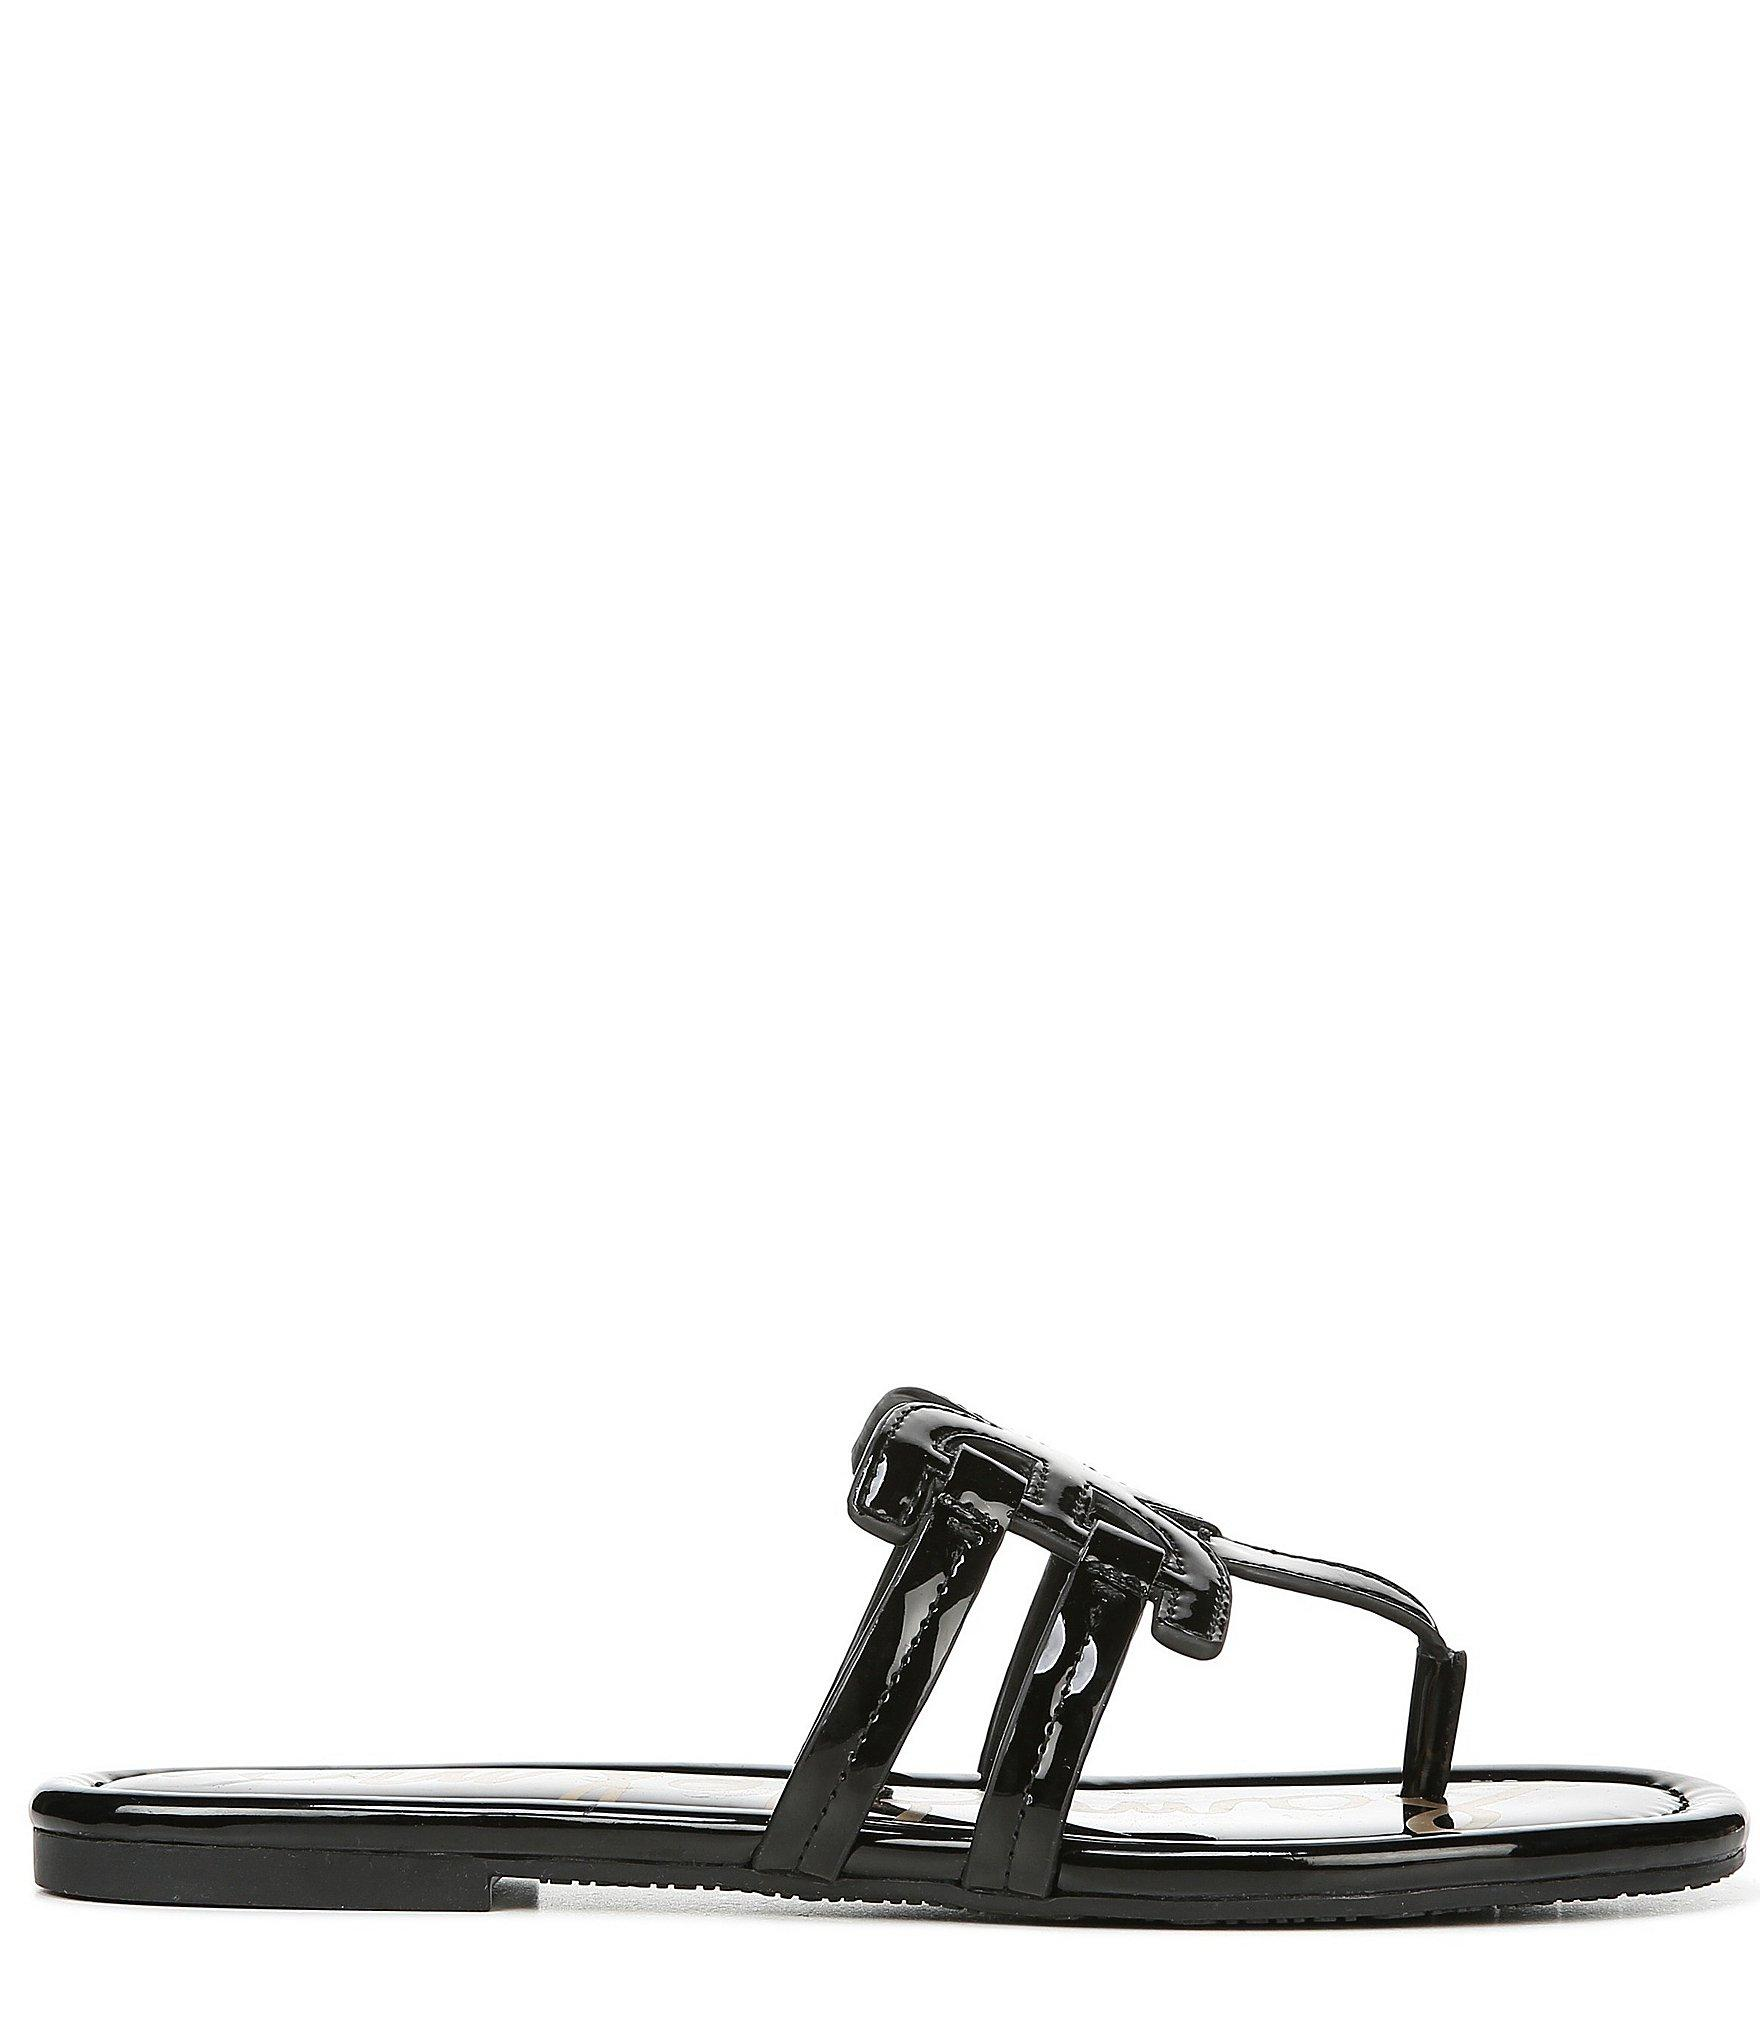 ab56d8110b14eb Lyst - Sam Edelman Cara Patent Double E Sandals in Black